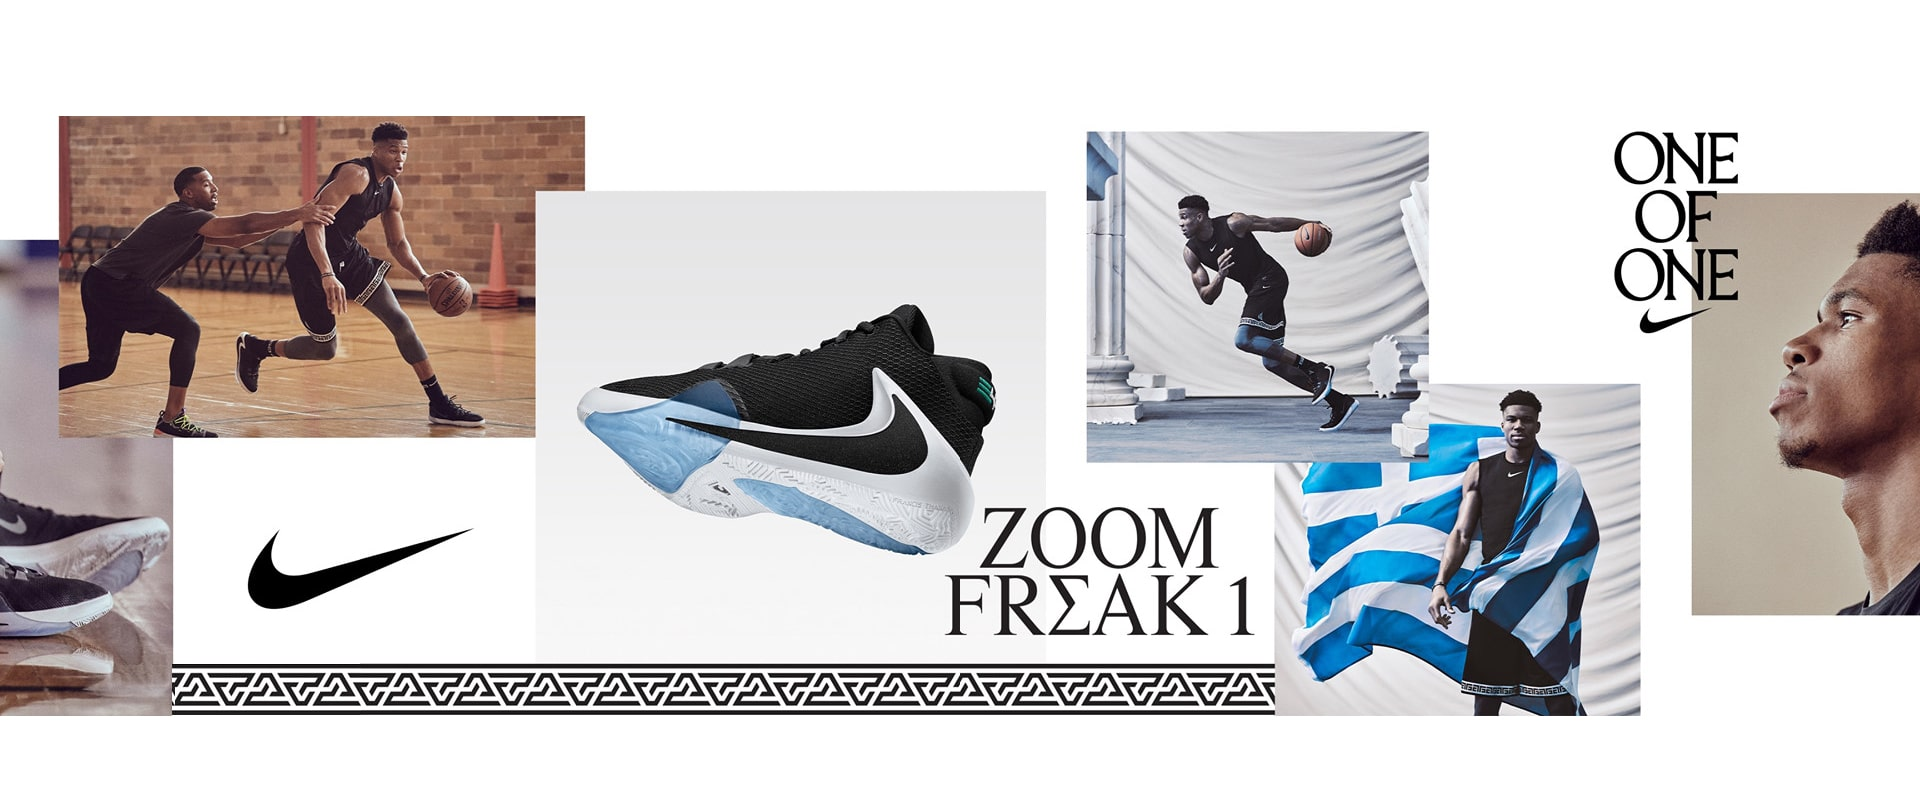 website for discount get online discount sale Ados Chaussure Nike Nike Chaussure Vert Ados Vert m8nwvNO0